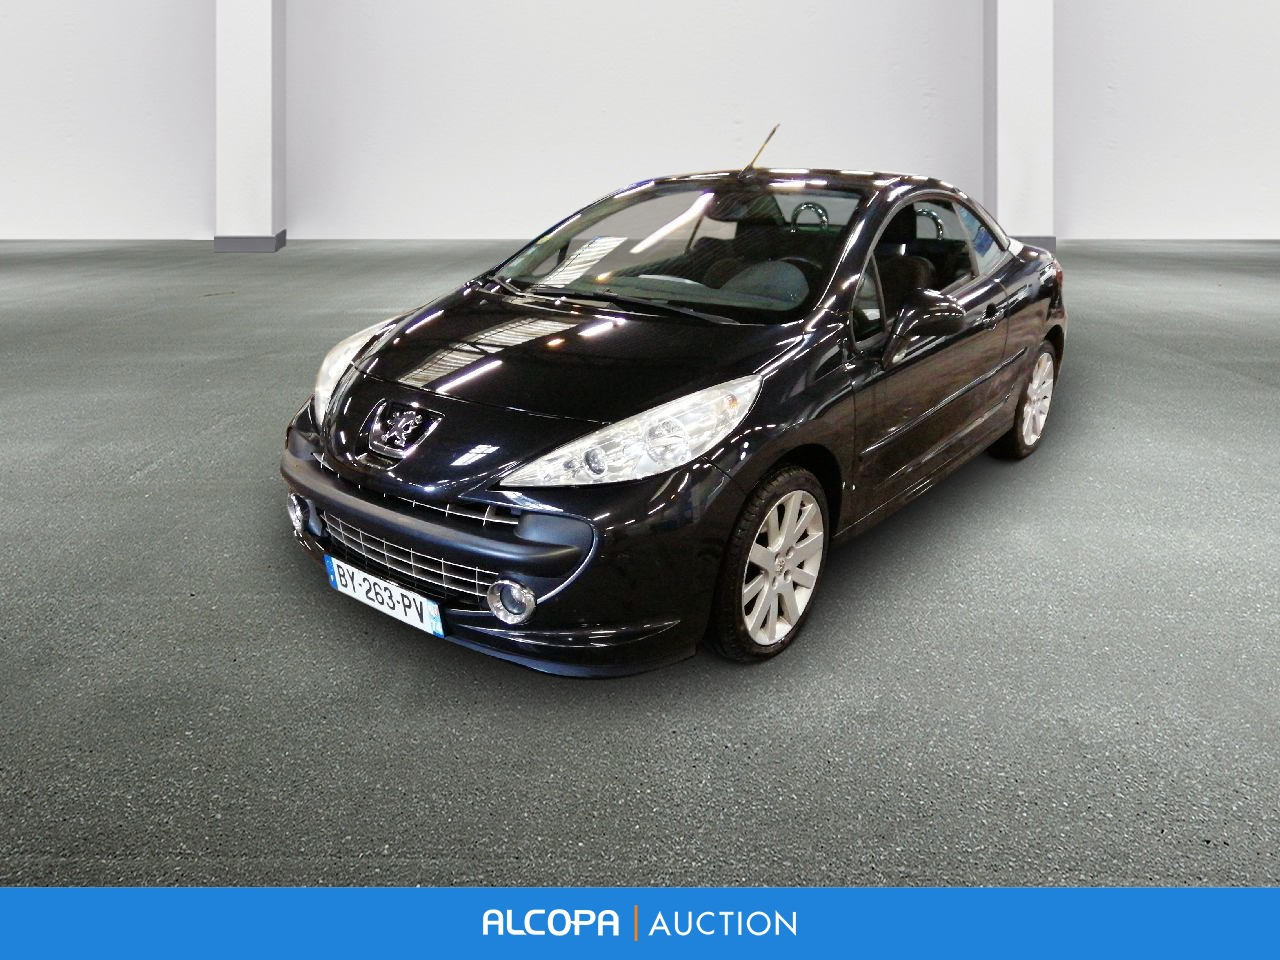 peugeot 207 cc 207 cc 1 6 vti 16v 120ch sport pack nancy alcopa auction. Black Bedroom Furniture Sets. Home Design Ideas